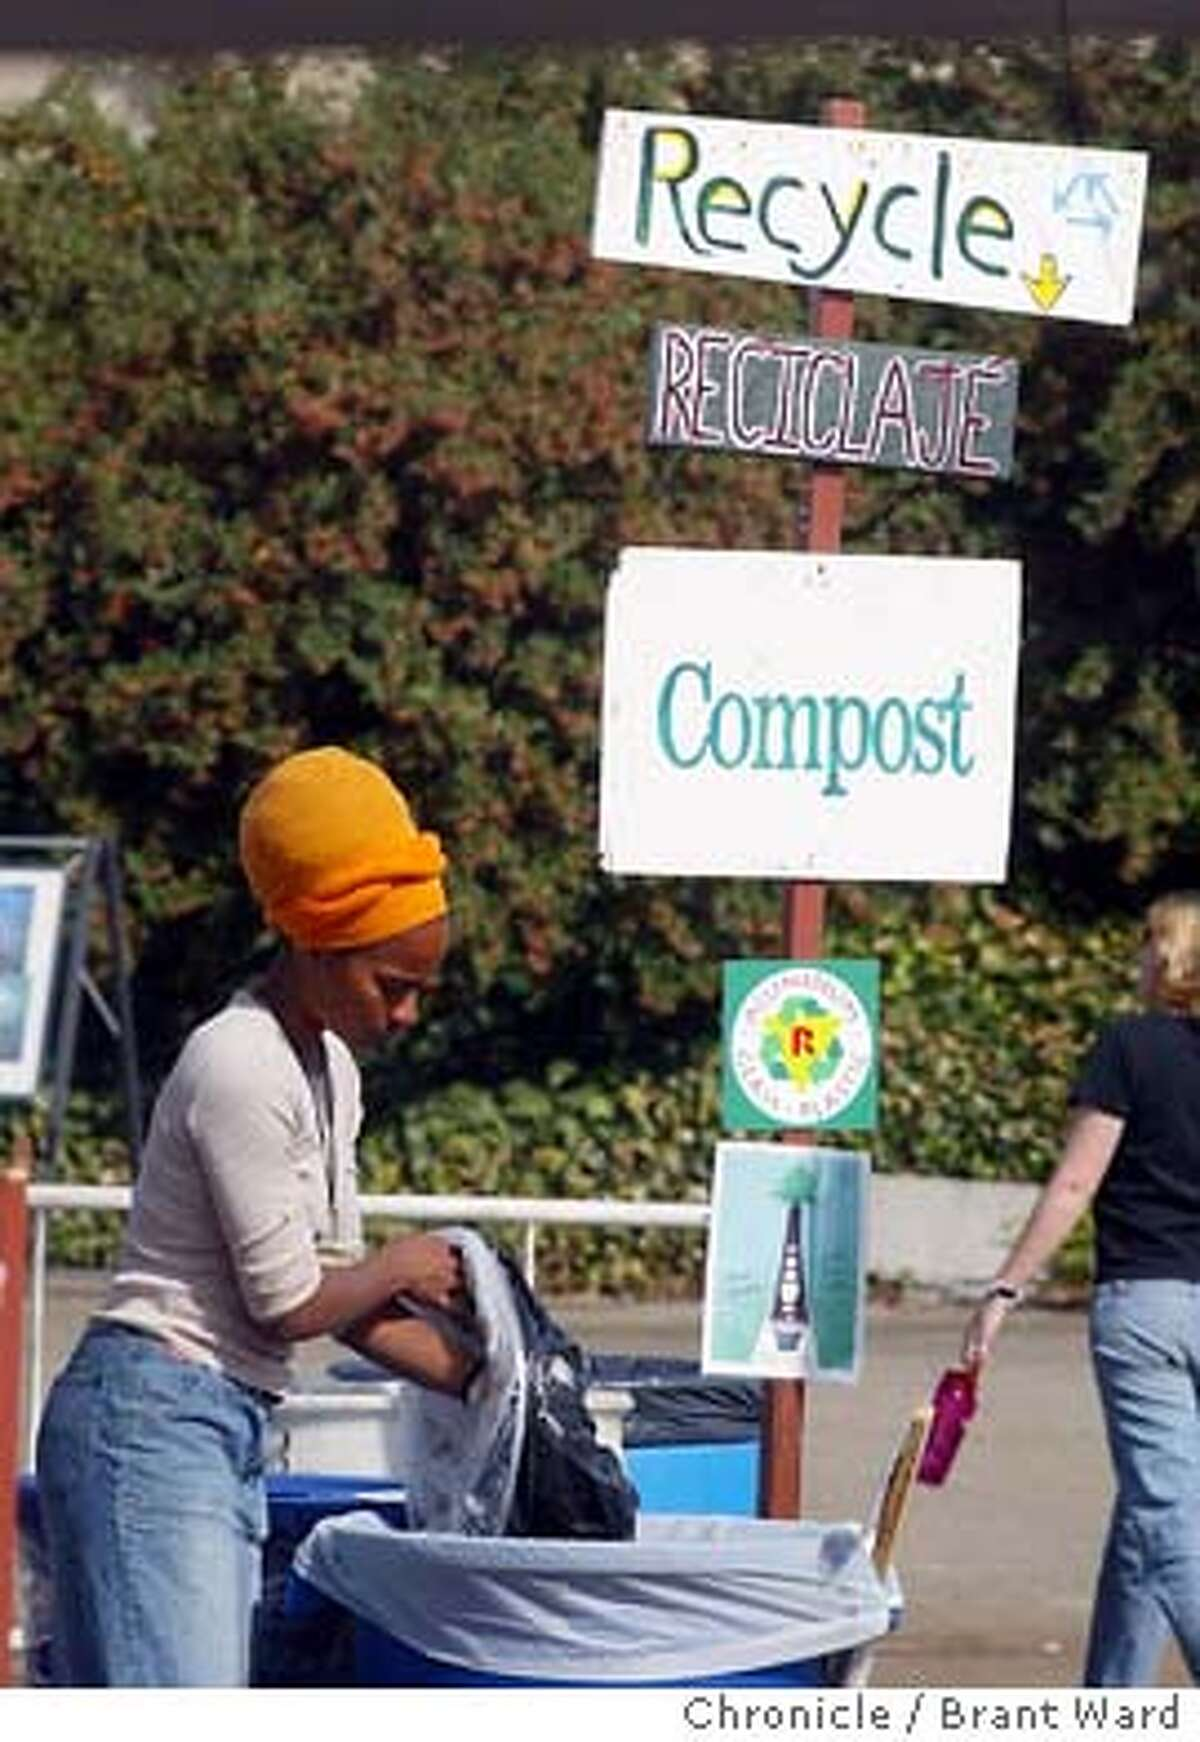 bioneers009_bw.jpg The Bioneers conference was held at the Marin County Civic Center over the weekend. These